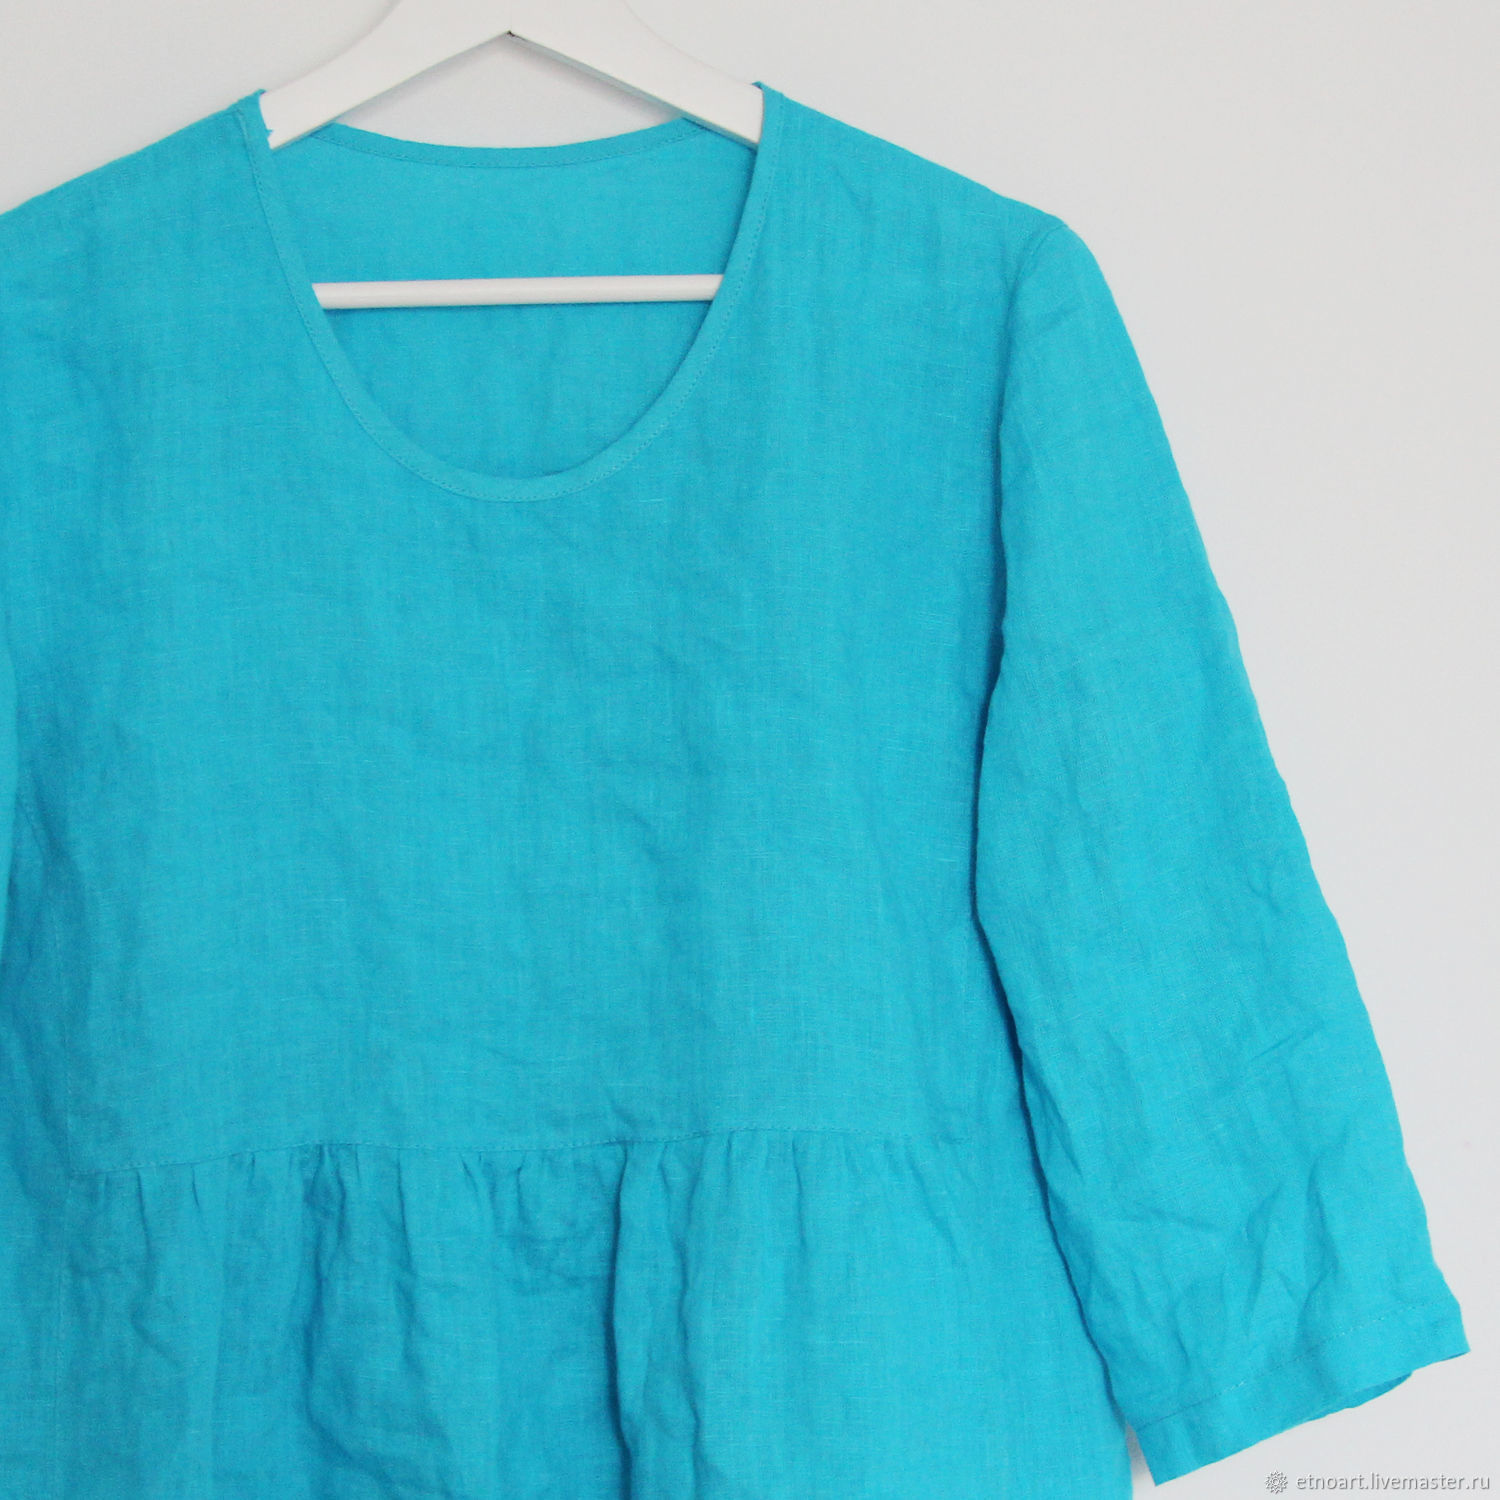 Turquoise boho blouse made of 100% linen, Blouses, Tomsk,  Фото №1